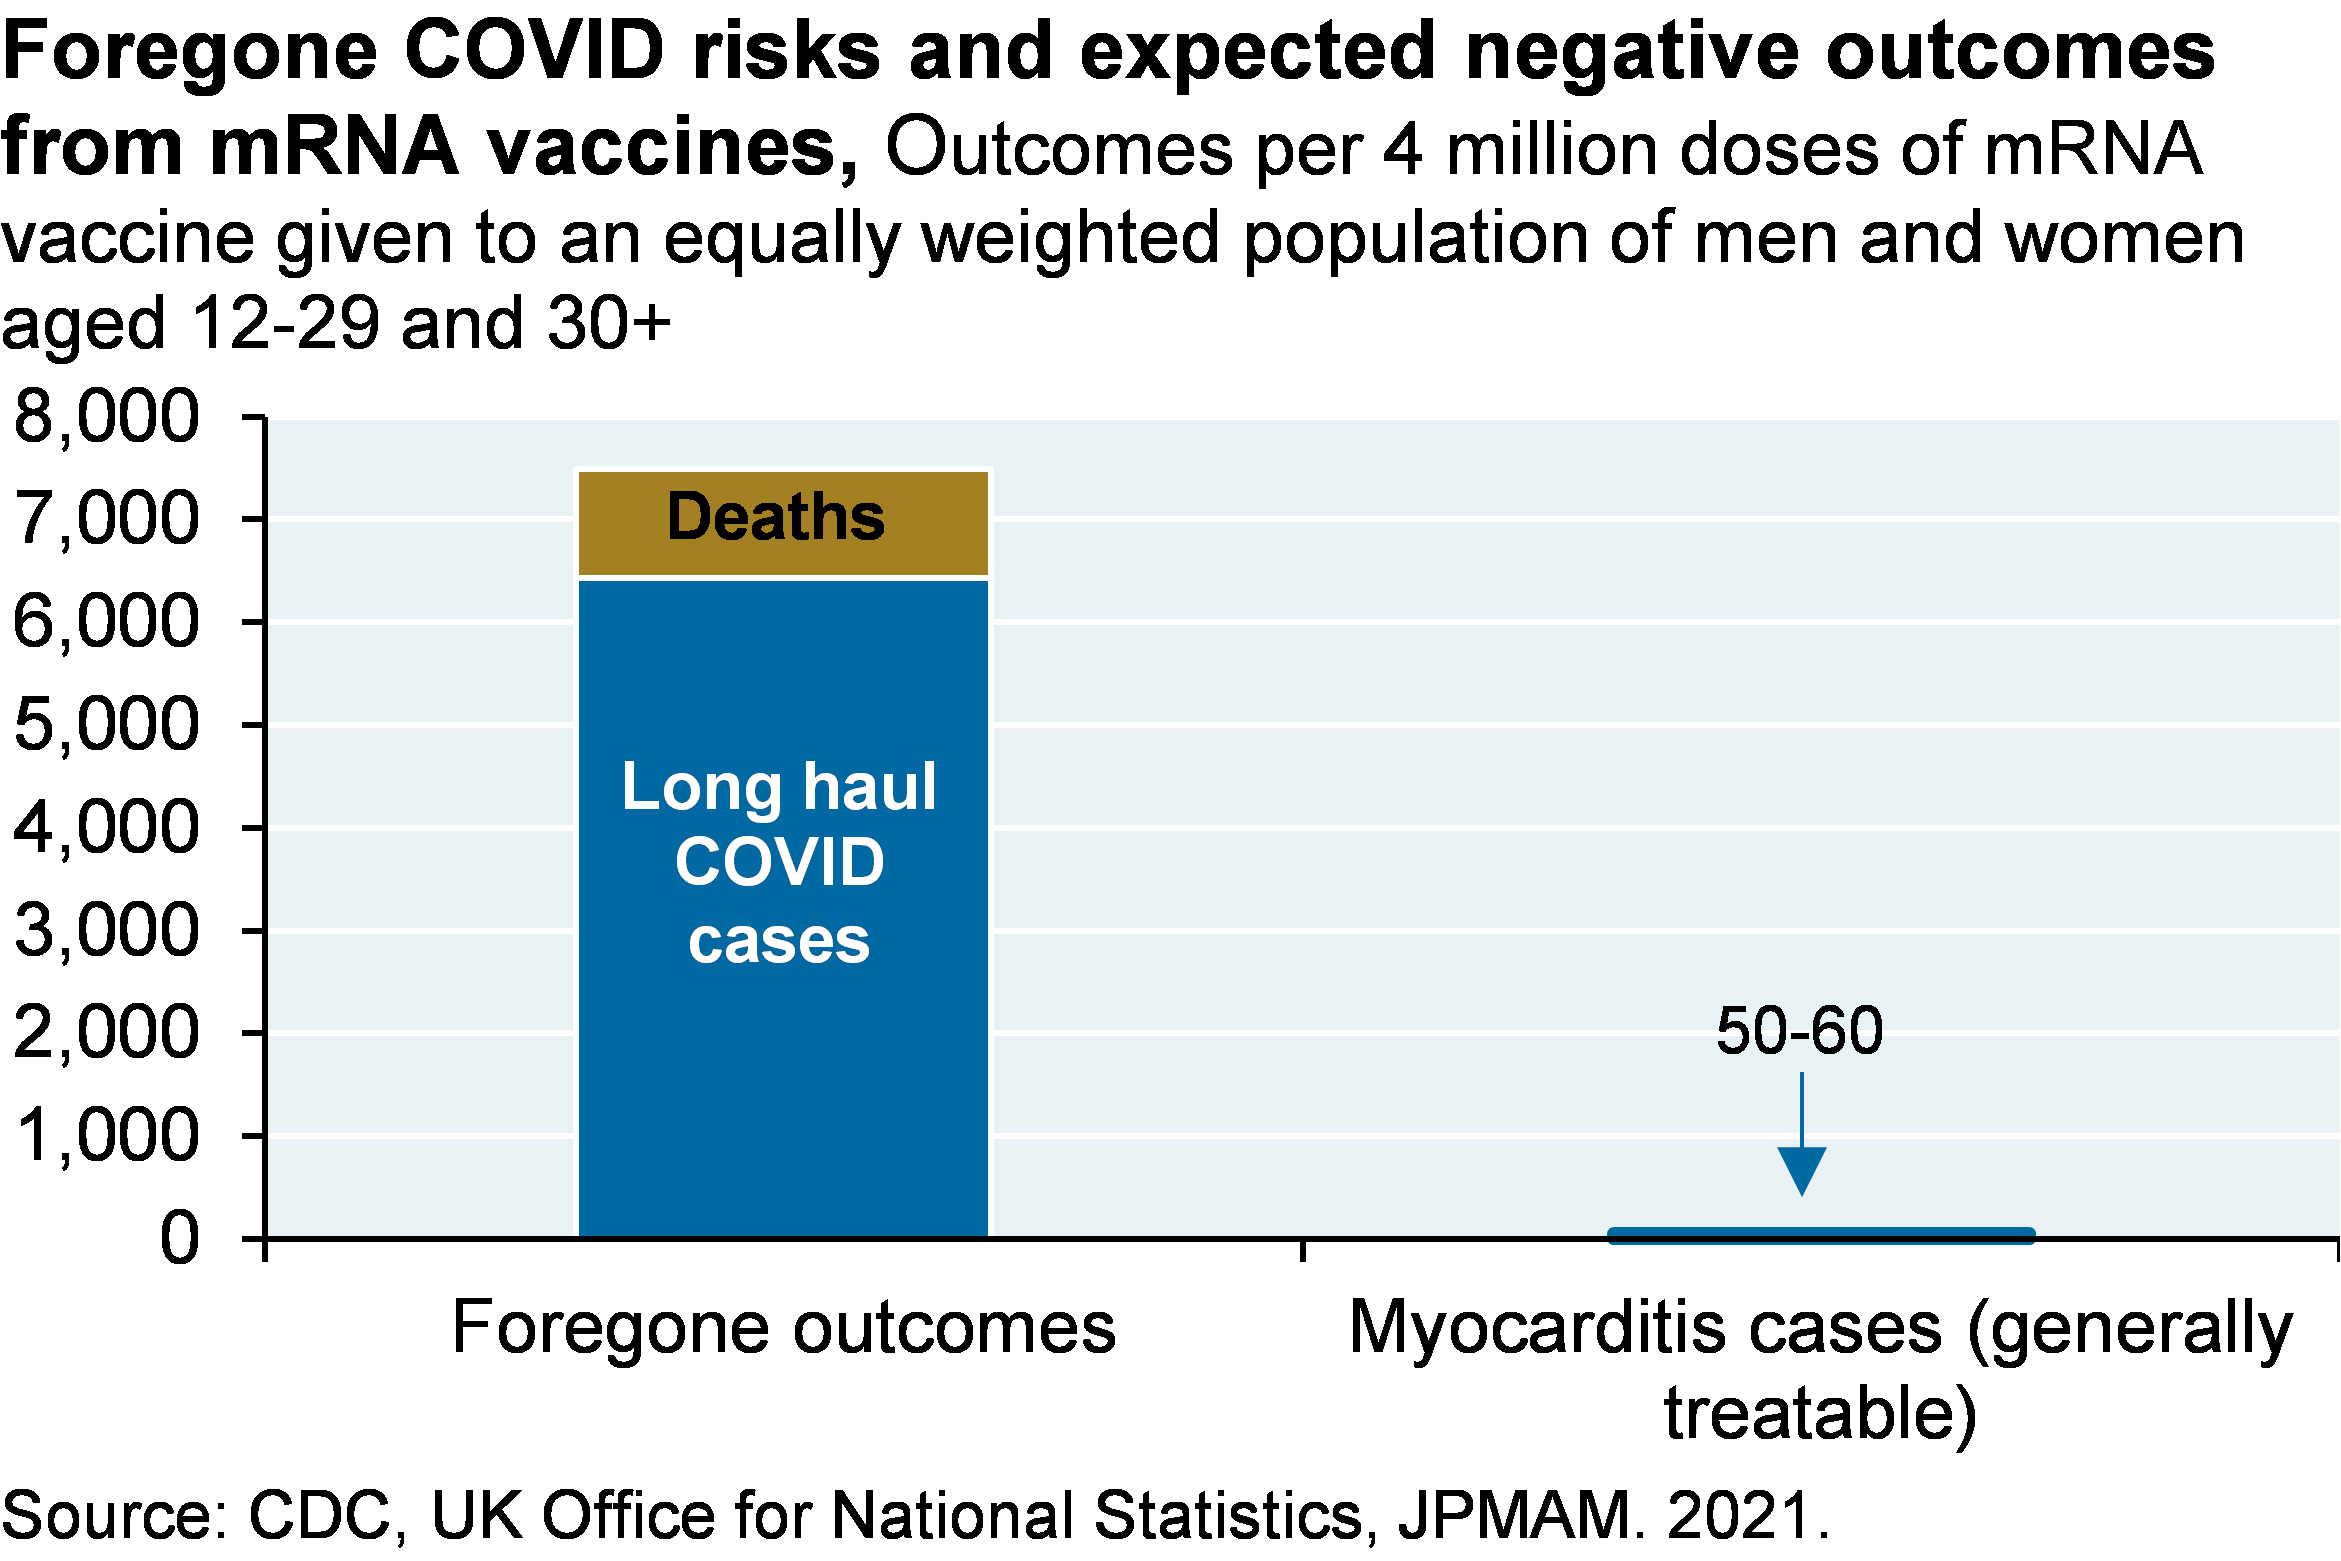 Bar chart shows foregone outcomes, including about 6,500 long haul COVID cases and about 1,000 deaths, per 4 million doses of mRNA vaccines administered, compared to the 50-60 cases of myocarditis, which is generally treatable.